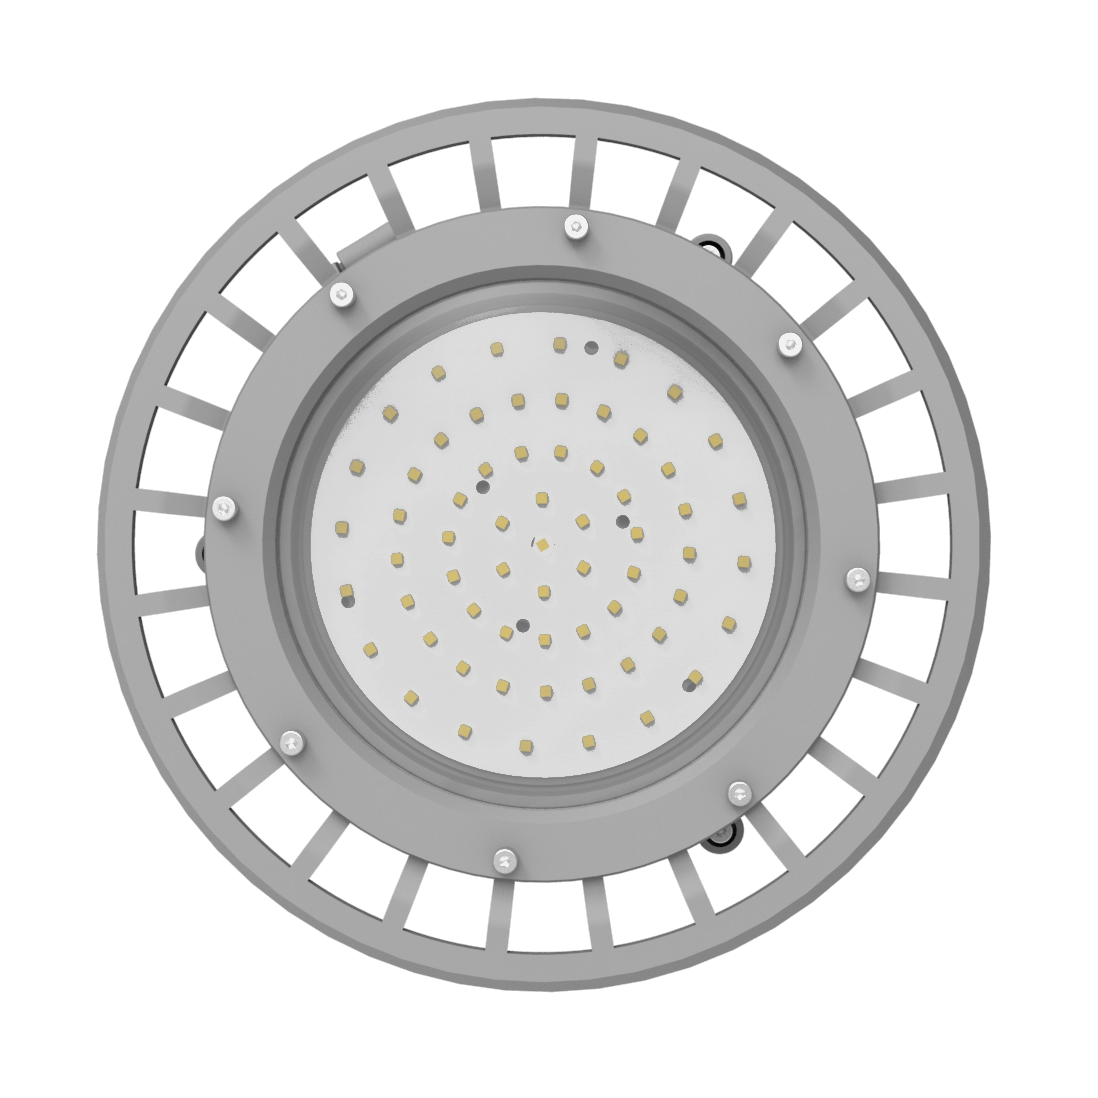 Intrinsically-Safe-LED-Area-Light-45-Watt-NICOR-XPR1B045U50GRP-Eres-Pendant-Mount-showing-LENS-tempered-glass.png